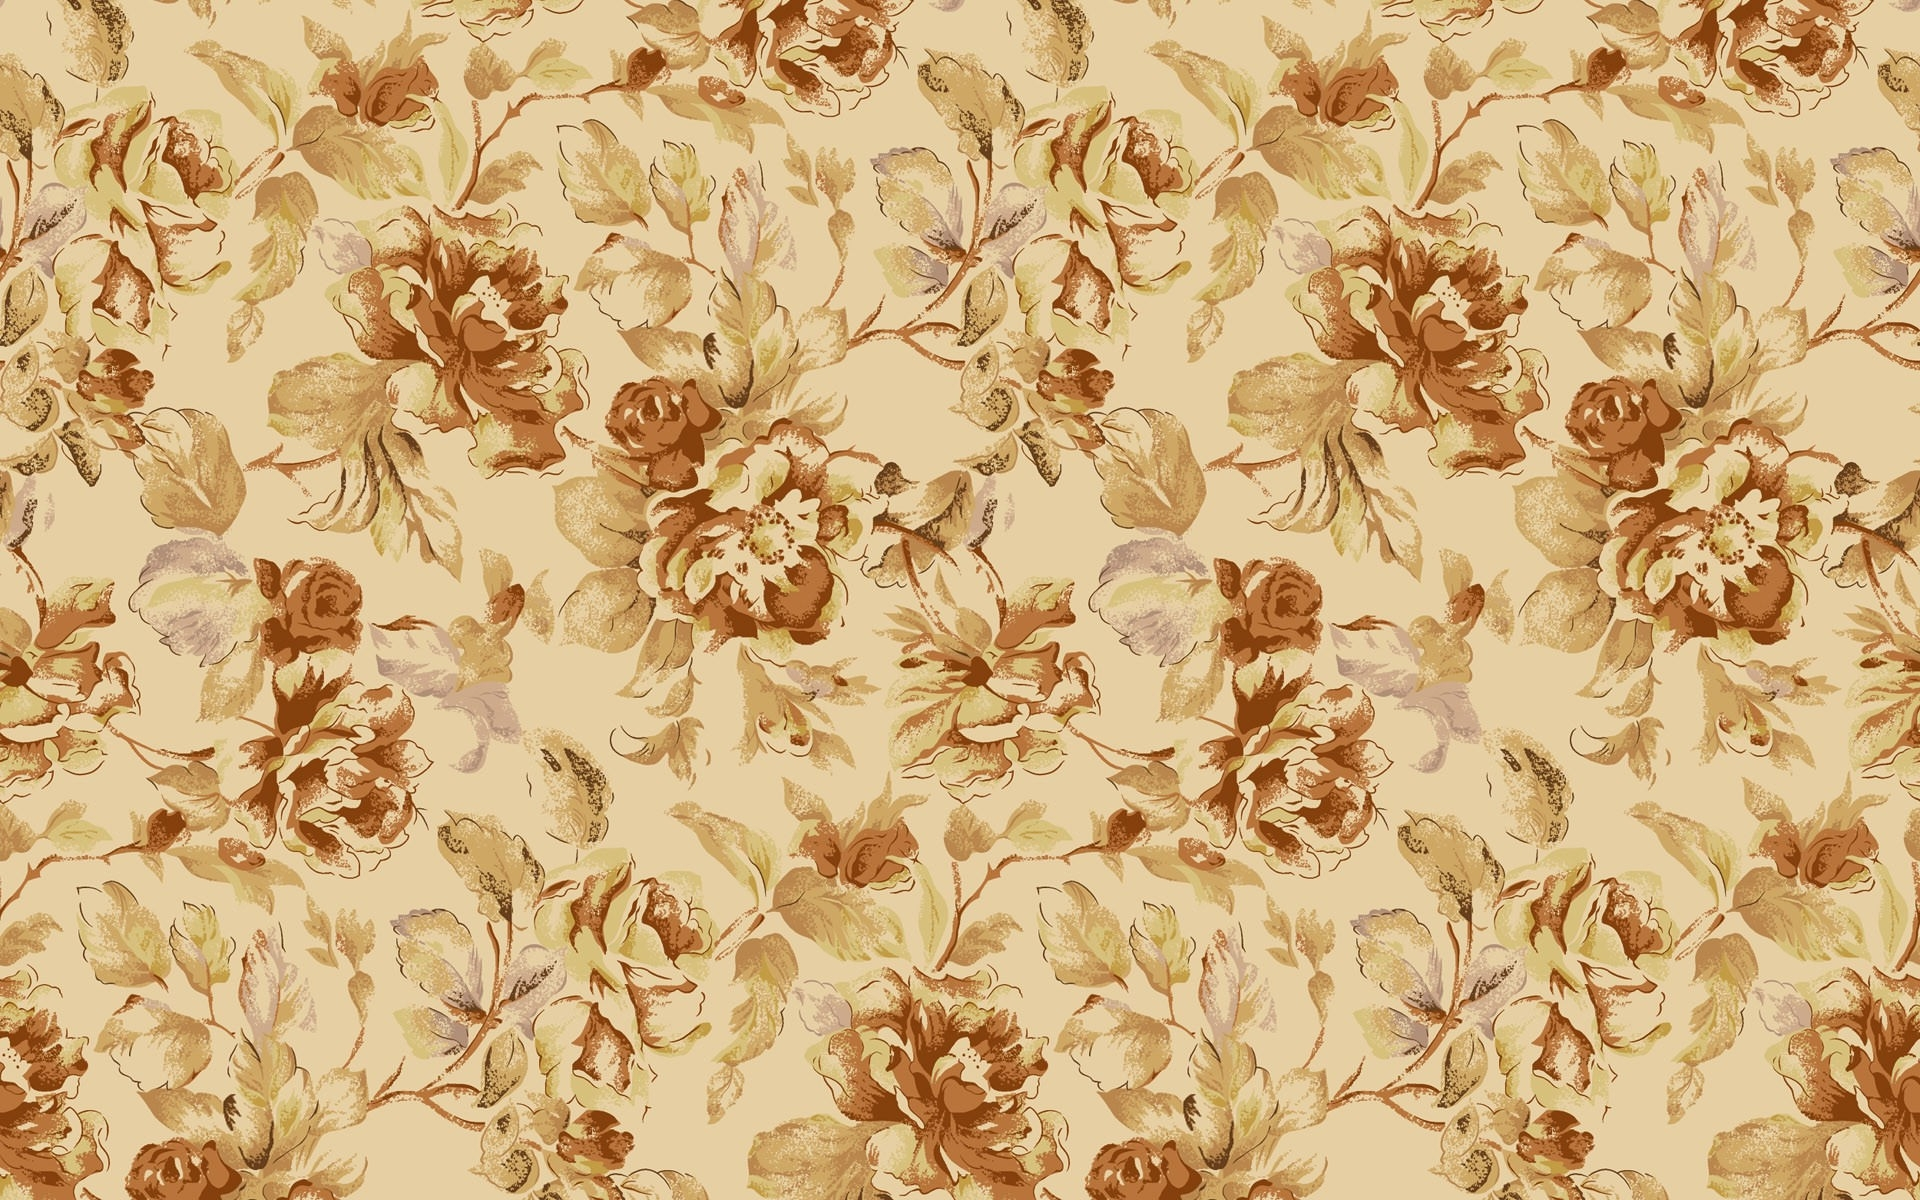 Download 15 free floral vintage wallpapers for Vintage wallpaper